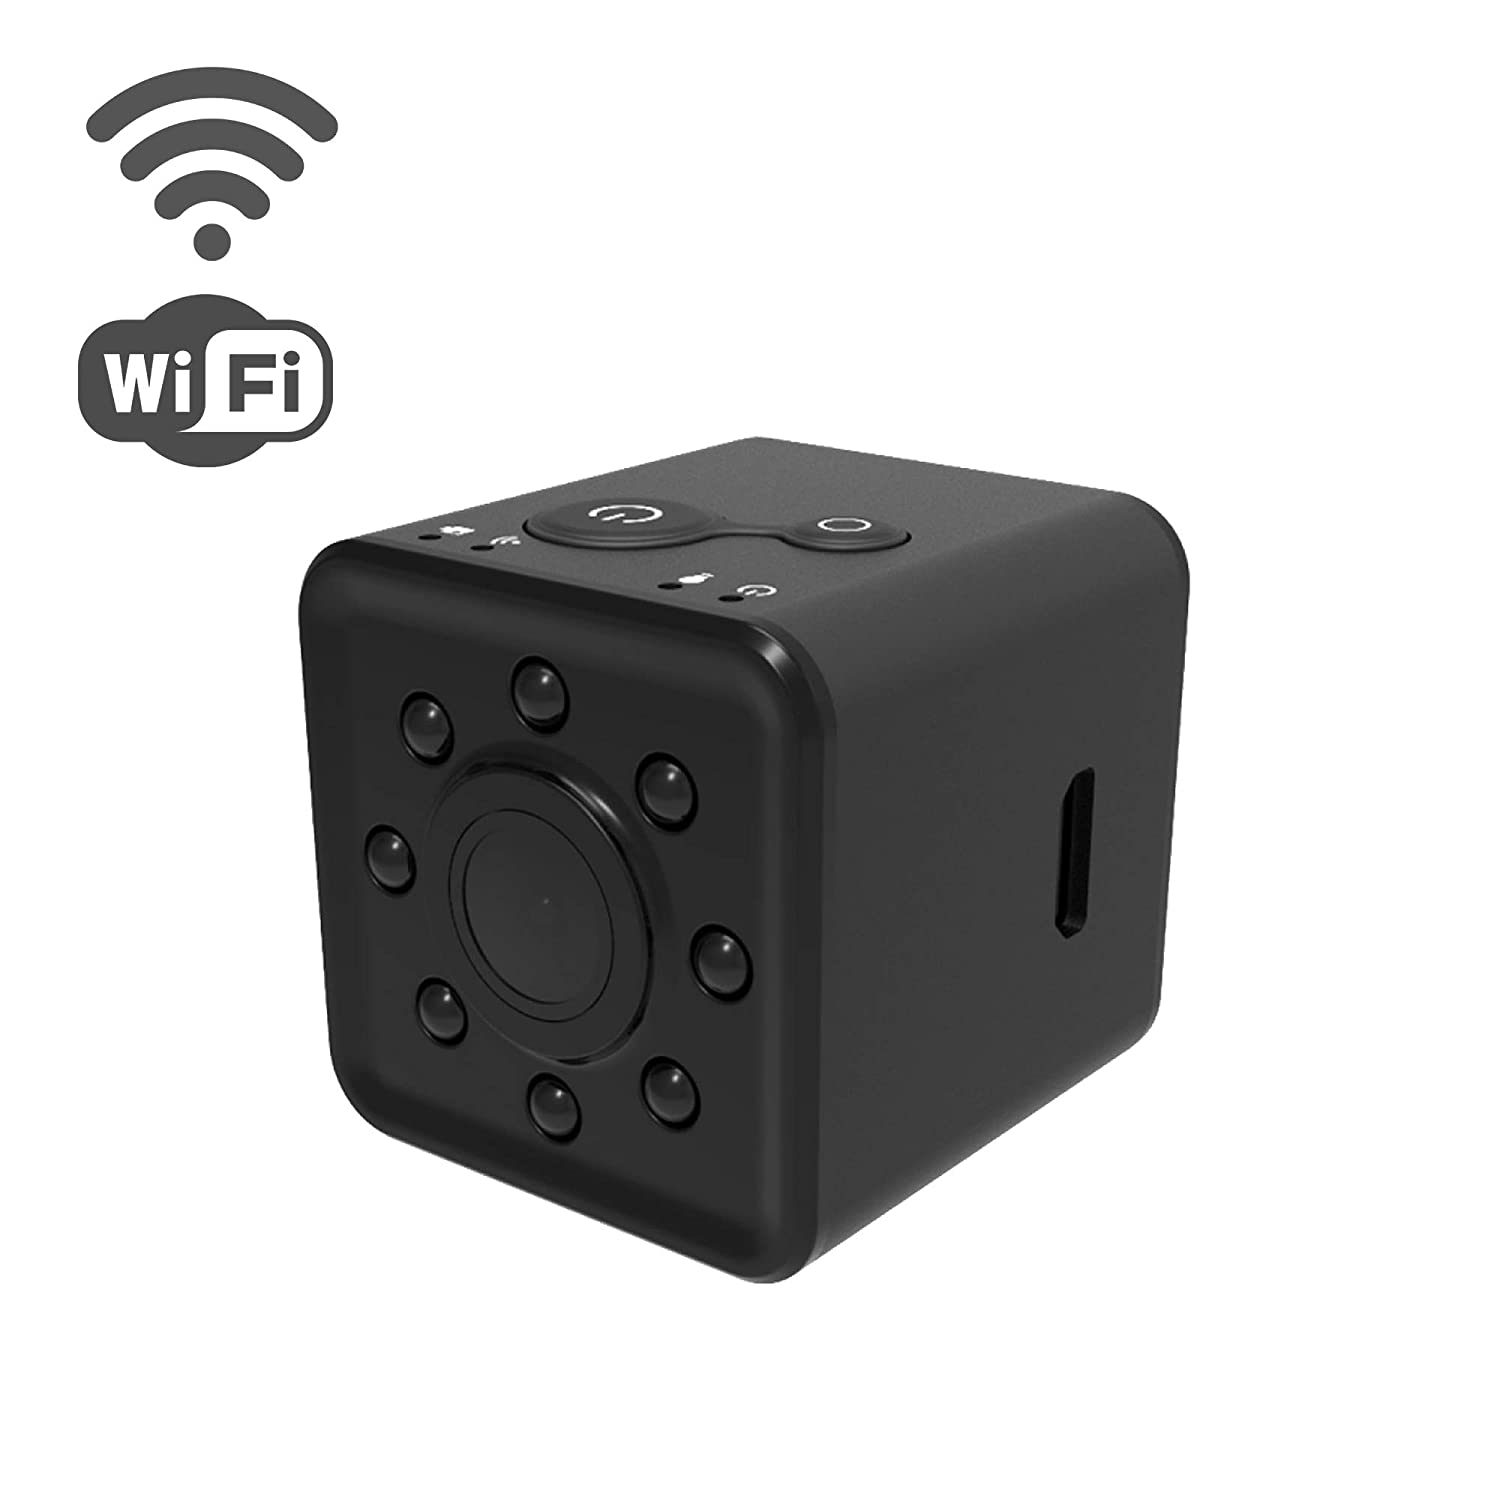 9. Pavlysh WiFi Hidden Camera with Audio - Waterproof Spy Camera with Night Vision and Motion Detection